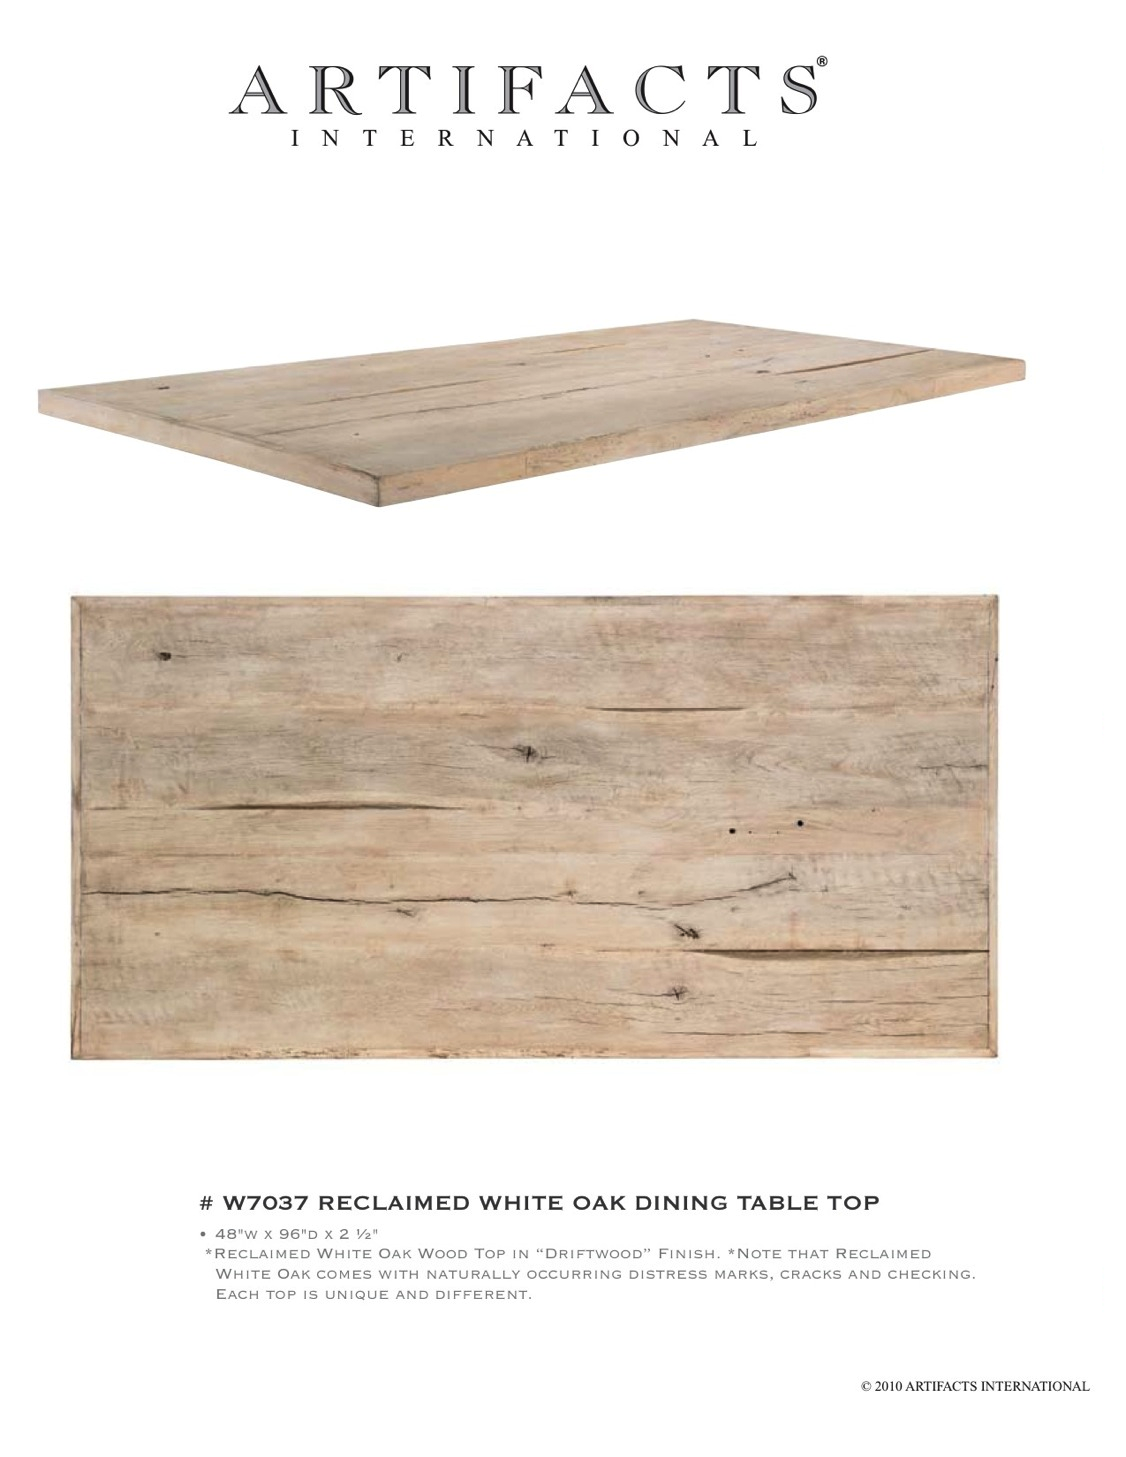 Reclaimed Oak Table Top For The Home Pinterest Oak Table Top - Reclaimed oak table top